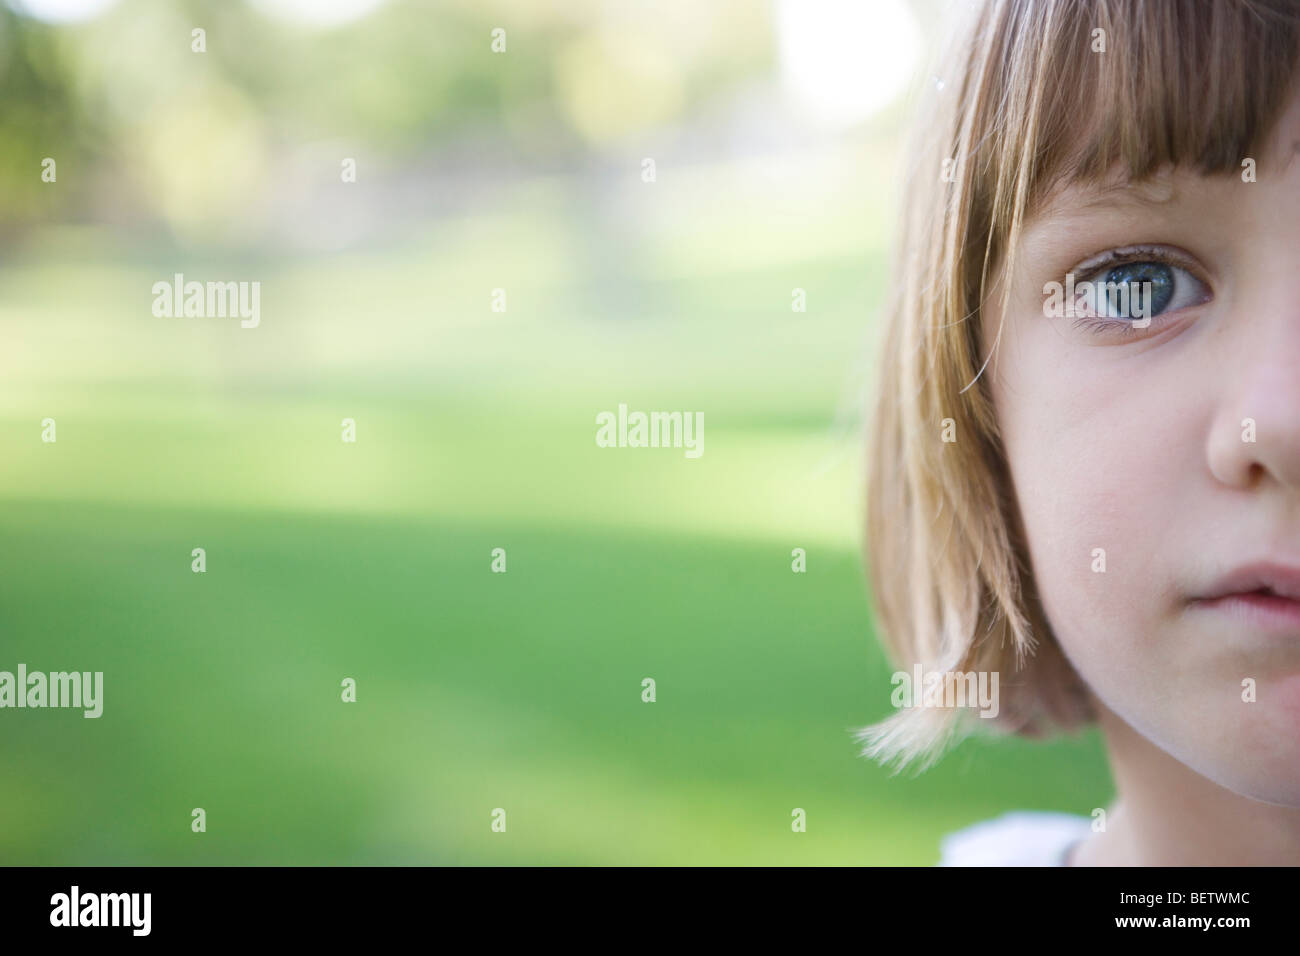 seven year old girl looking at camera with serious expression, green background, outdoors, closeup of face Stock Photo